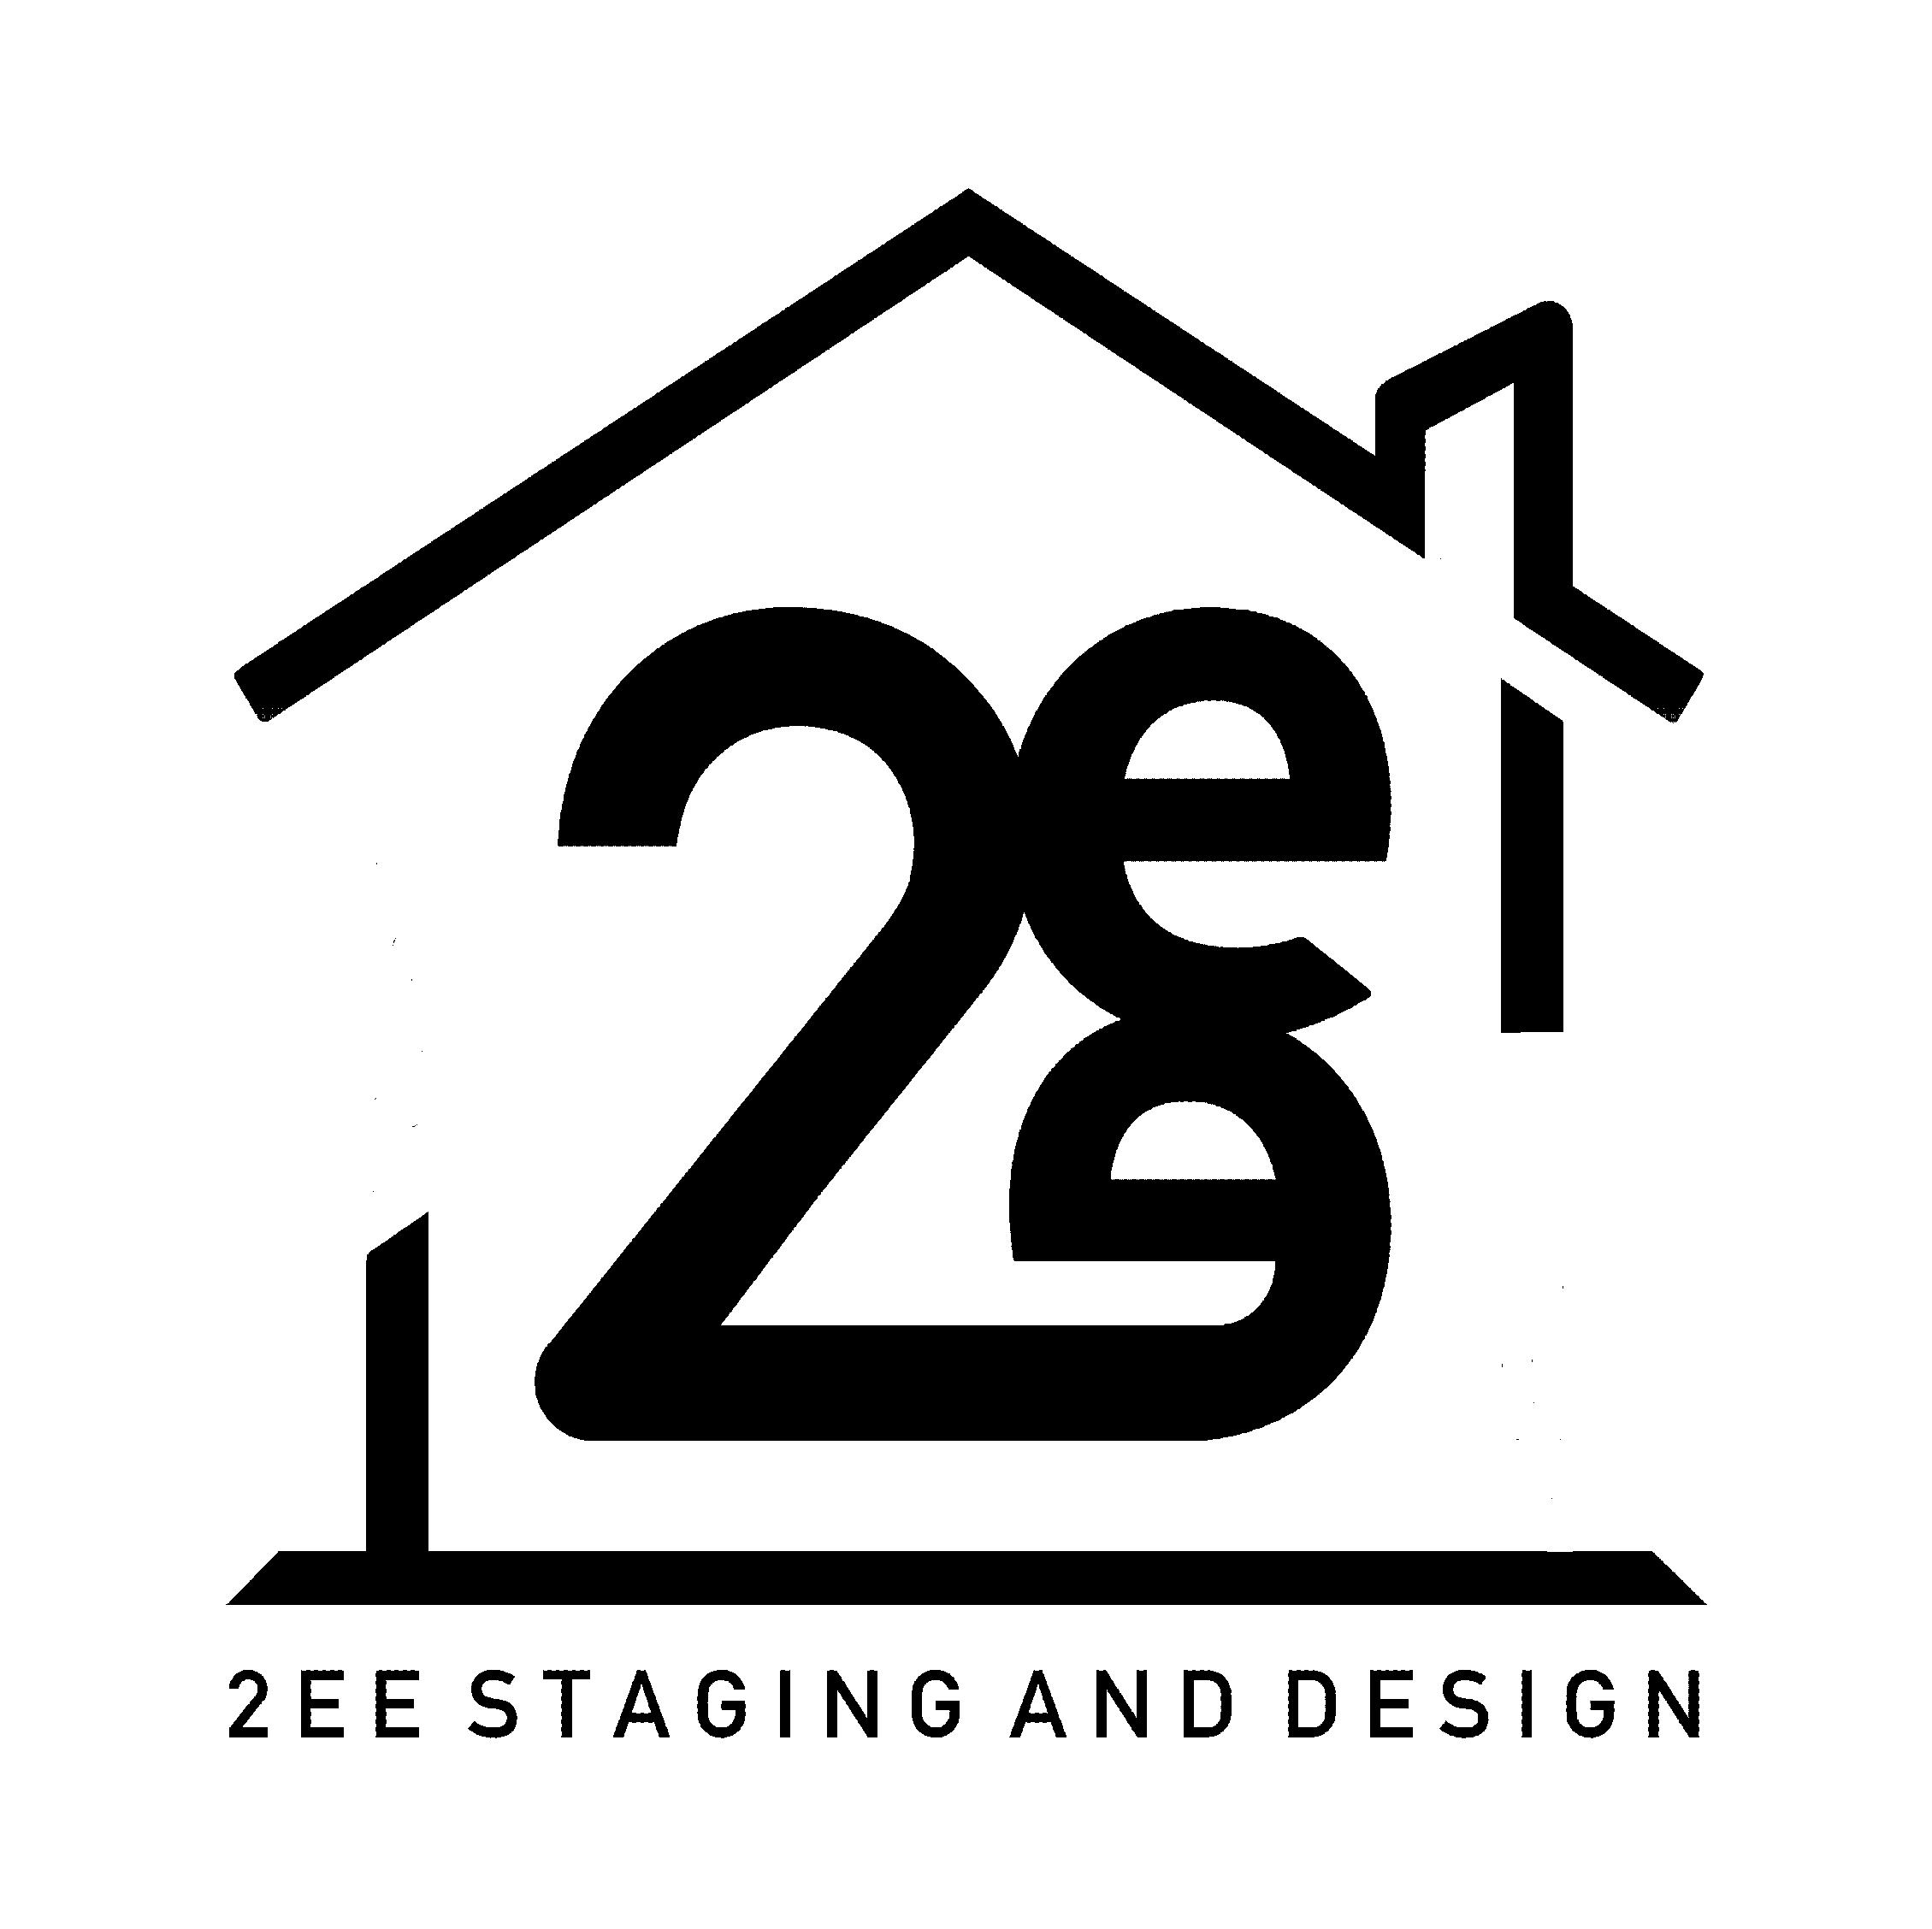 2ee Staging and Design Logo